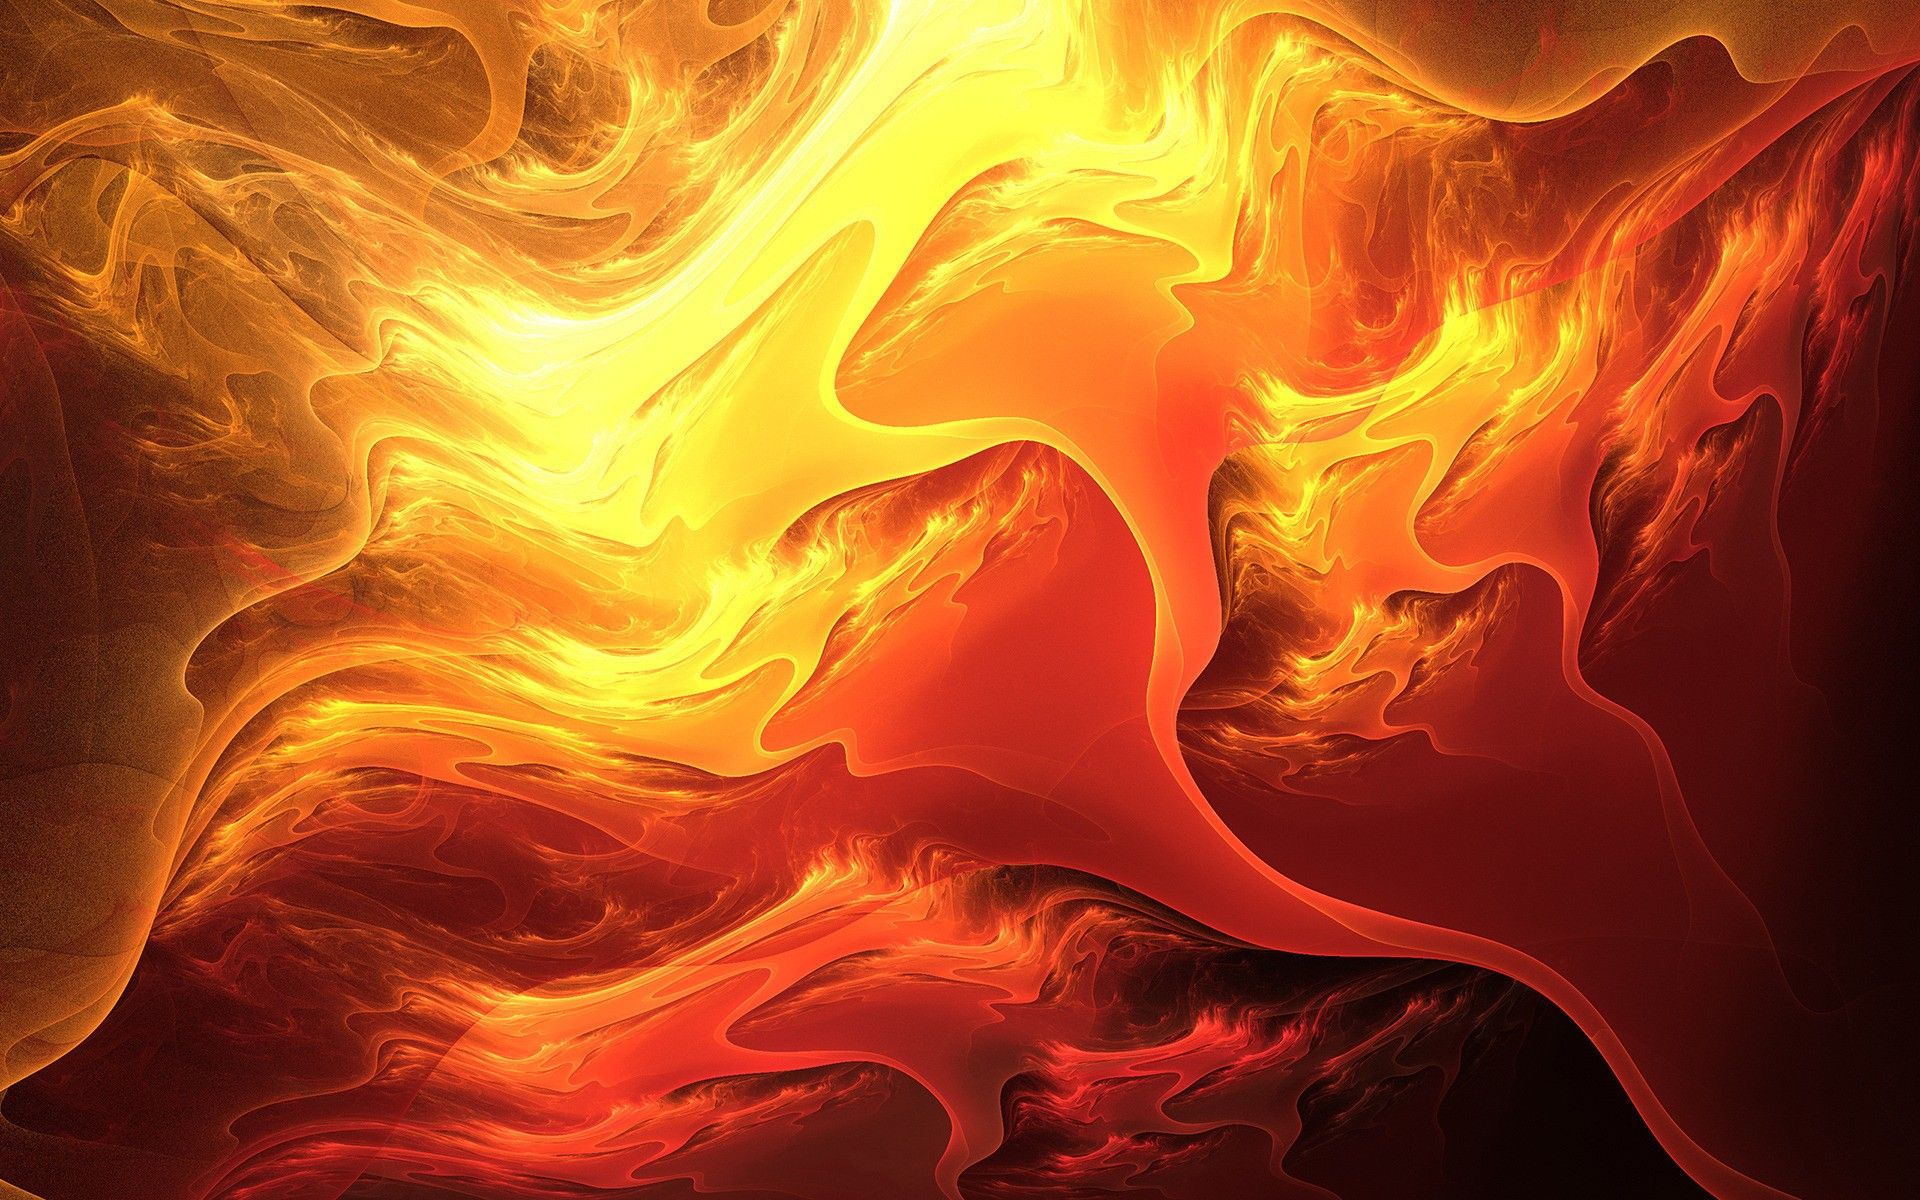 3d Abstract Abstract Backgrounds Wallpapers Desktop Color Fire Images Abstract Bright Paintings Fire Art